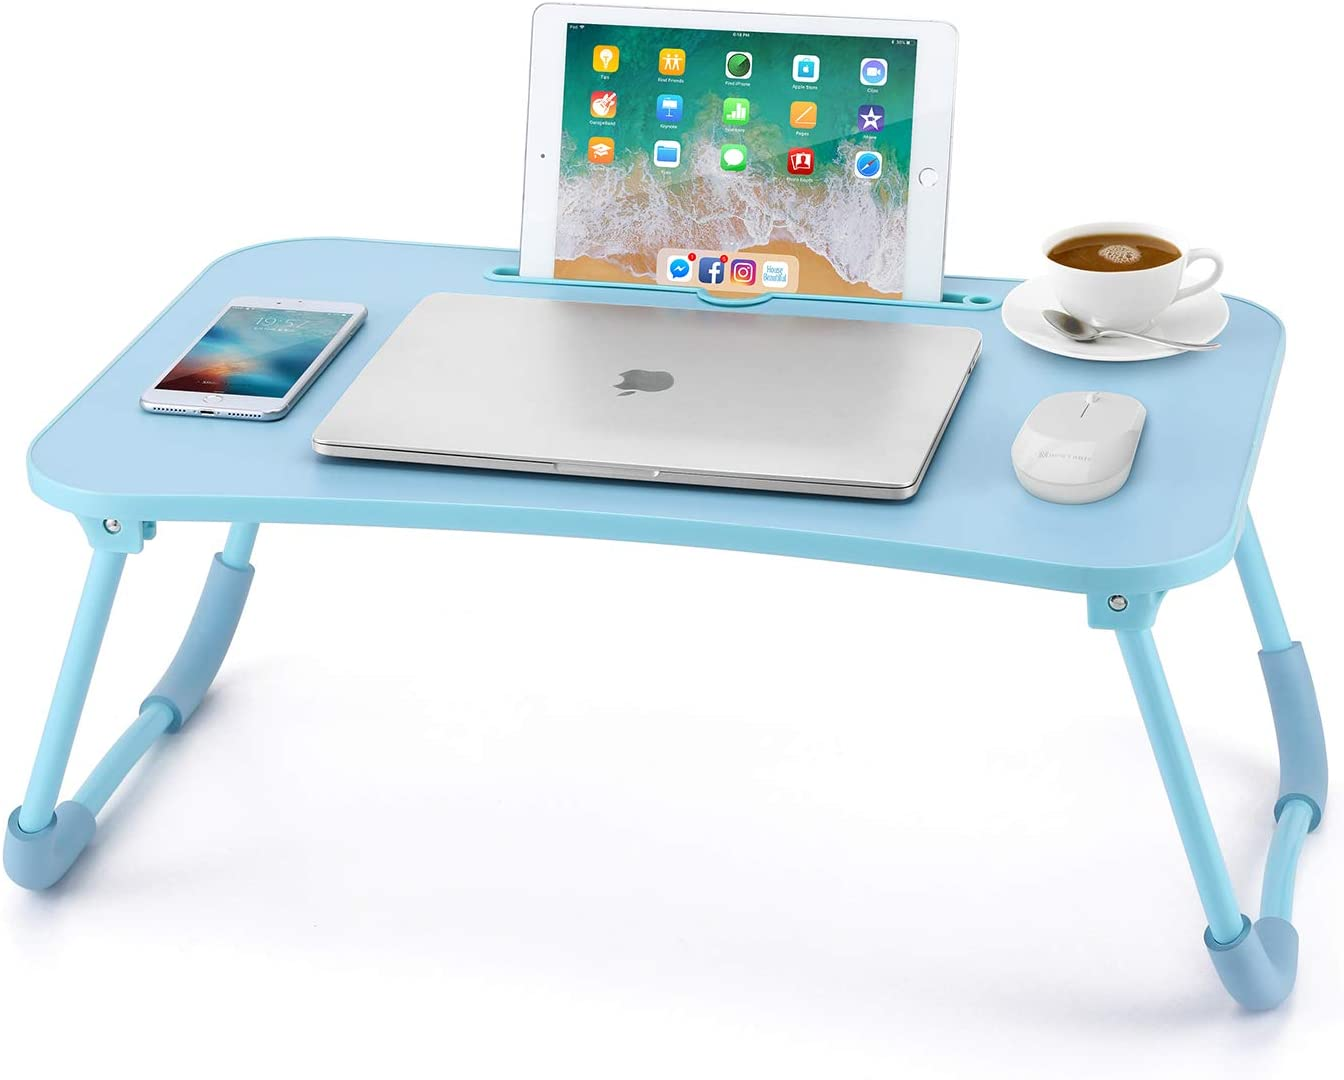 Nnewvante Lap Desk Bed Table Tray for Eating Writing Foldable Desk with iPad Slots for Adults/Students/Kids, Blue